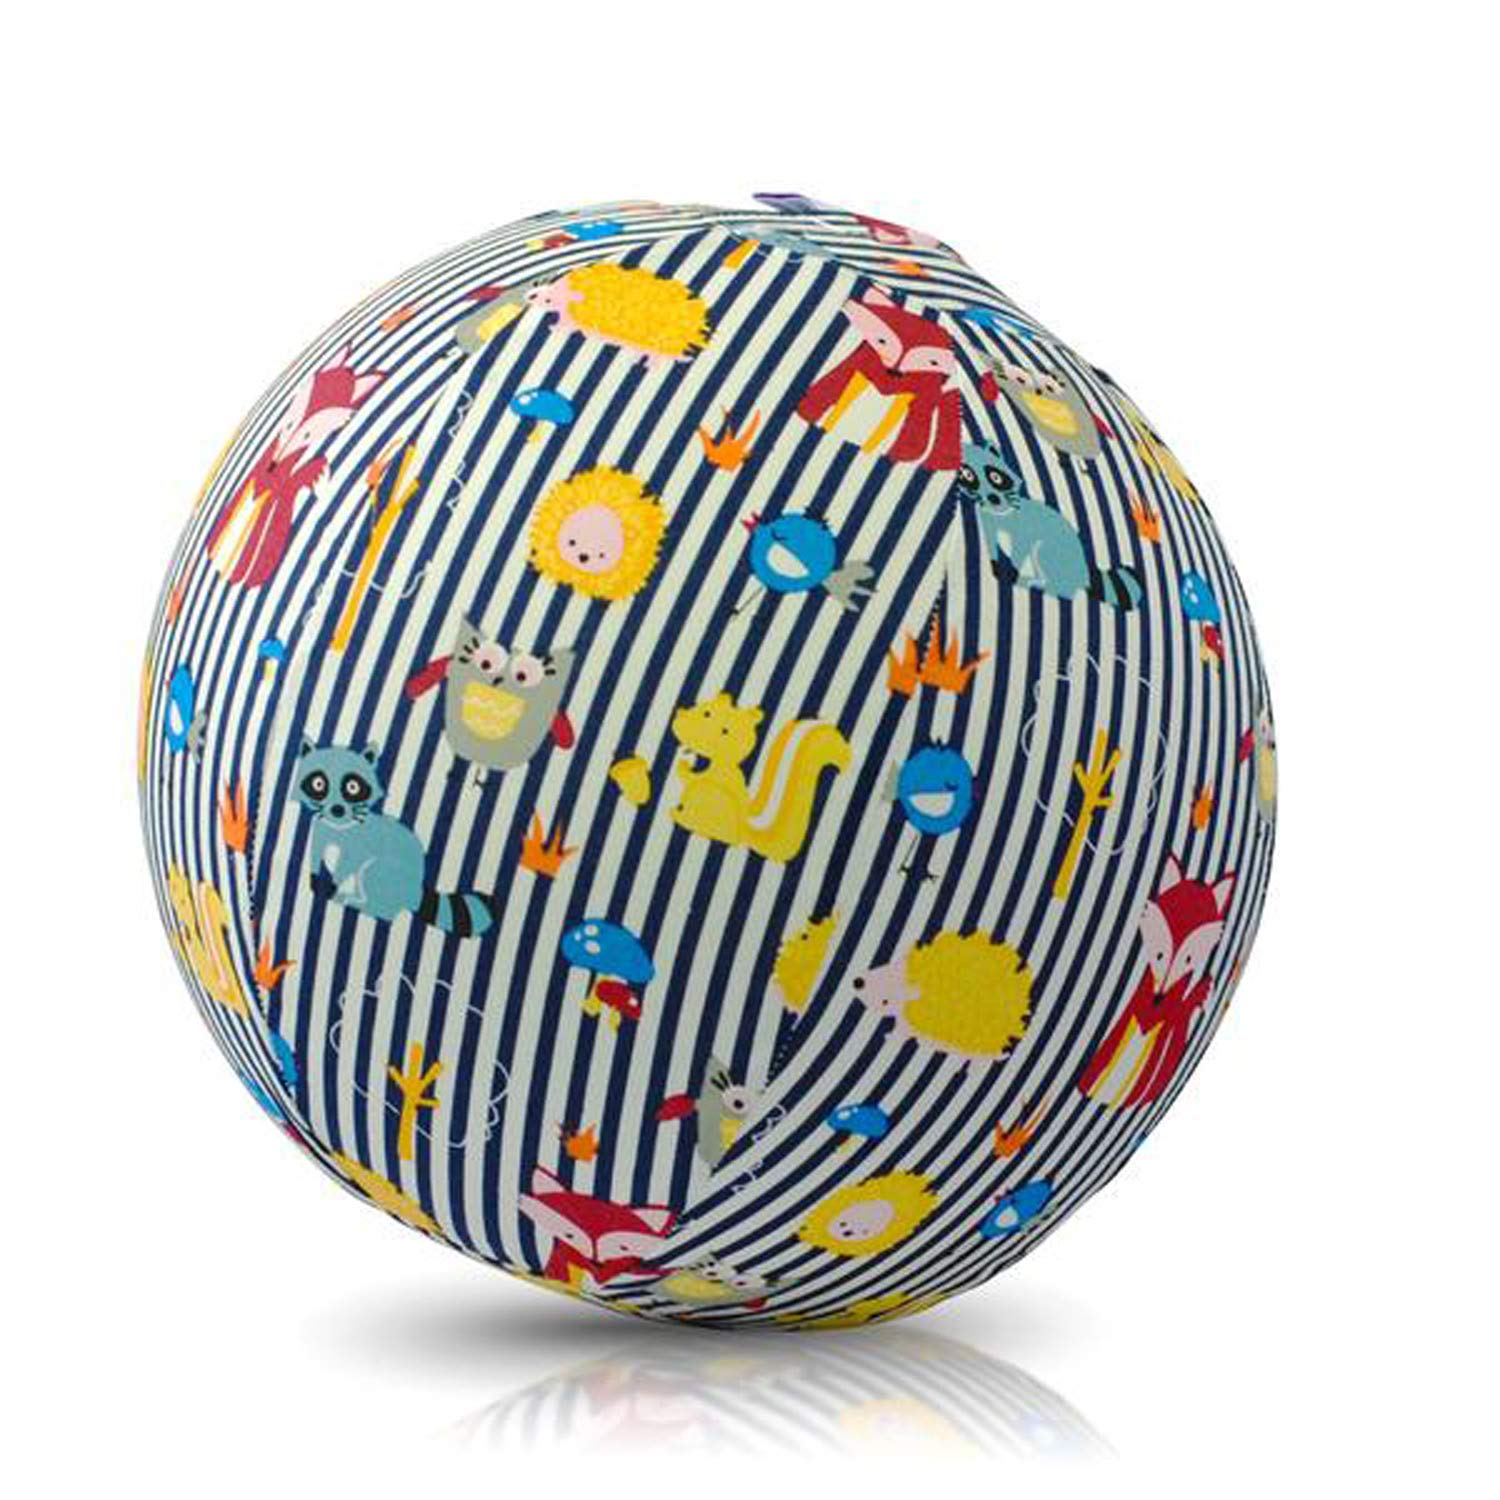 BUBABLOON Sensory Soft Cotton Balloon Cover, Animal Stripes Blue